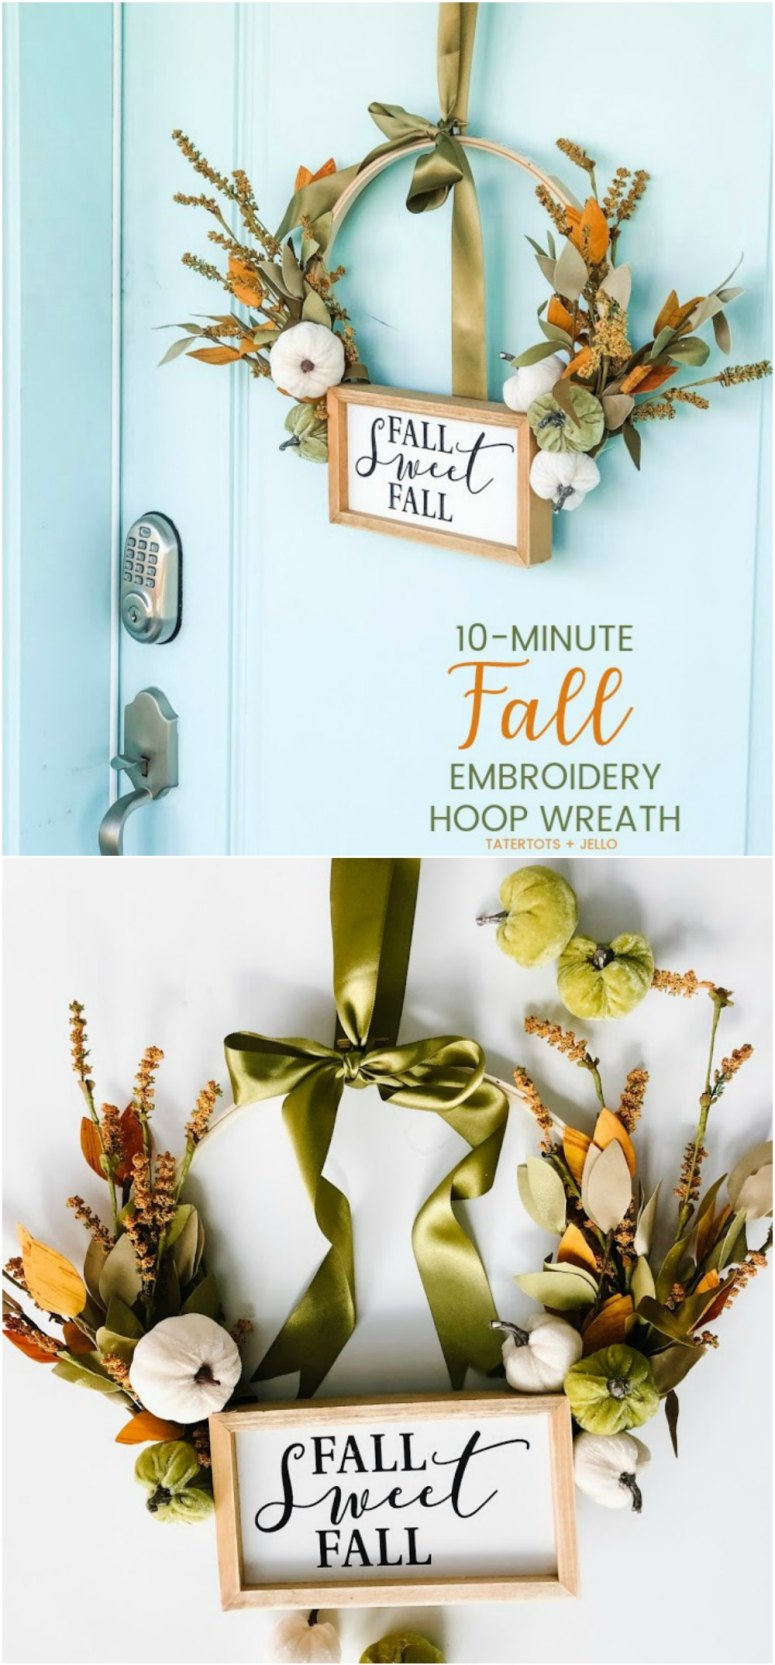 Make a Fall Embroidery Hoop Wreath! Only a few supplies are needed to create a beautiful wreath to display for Autumn and in less than 10 minutes you have a new fall wreath!